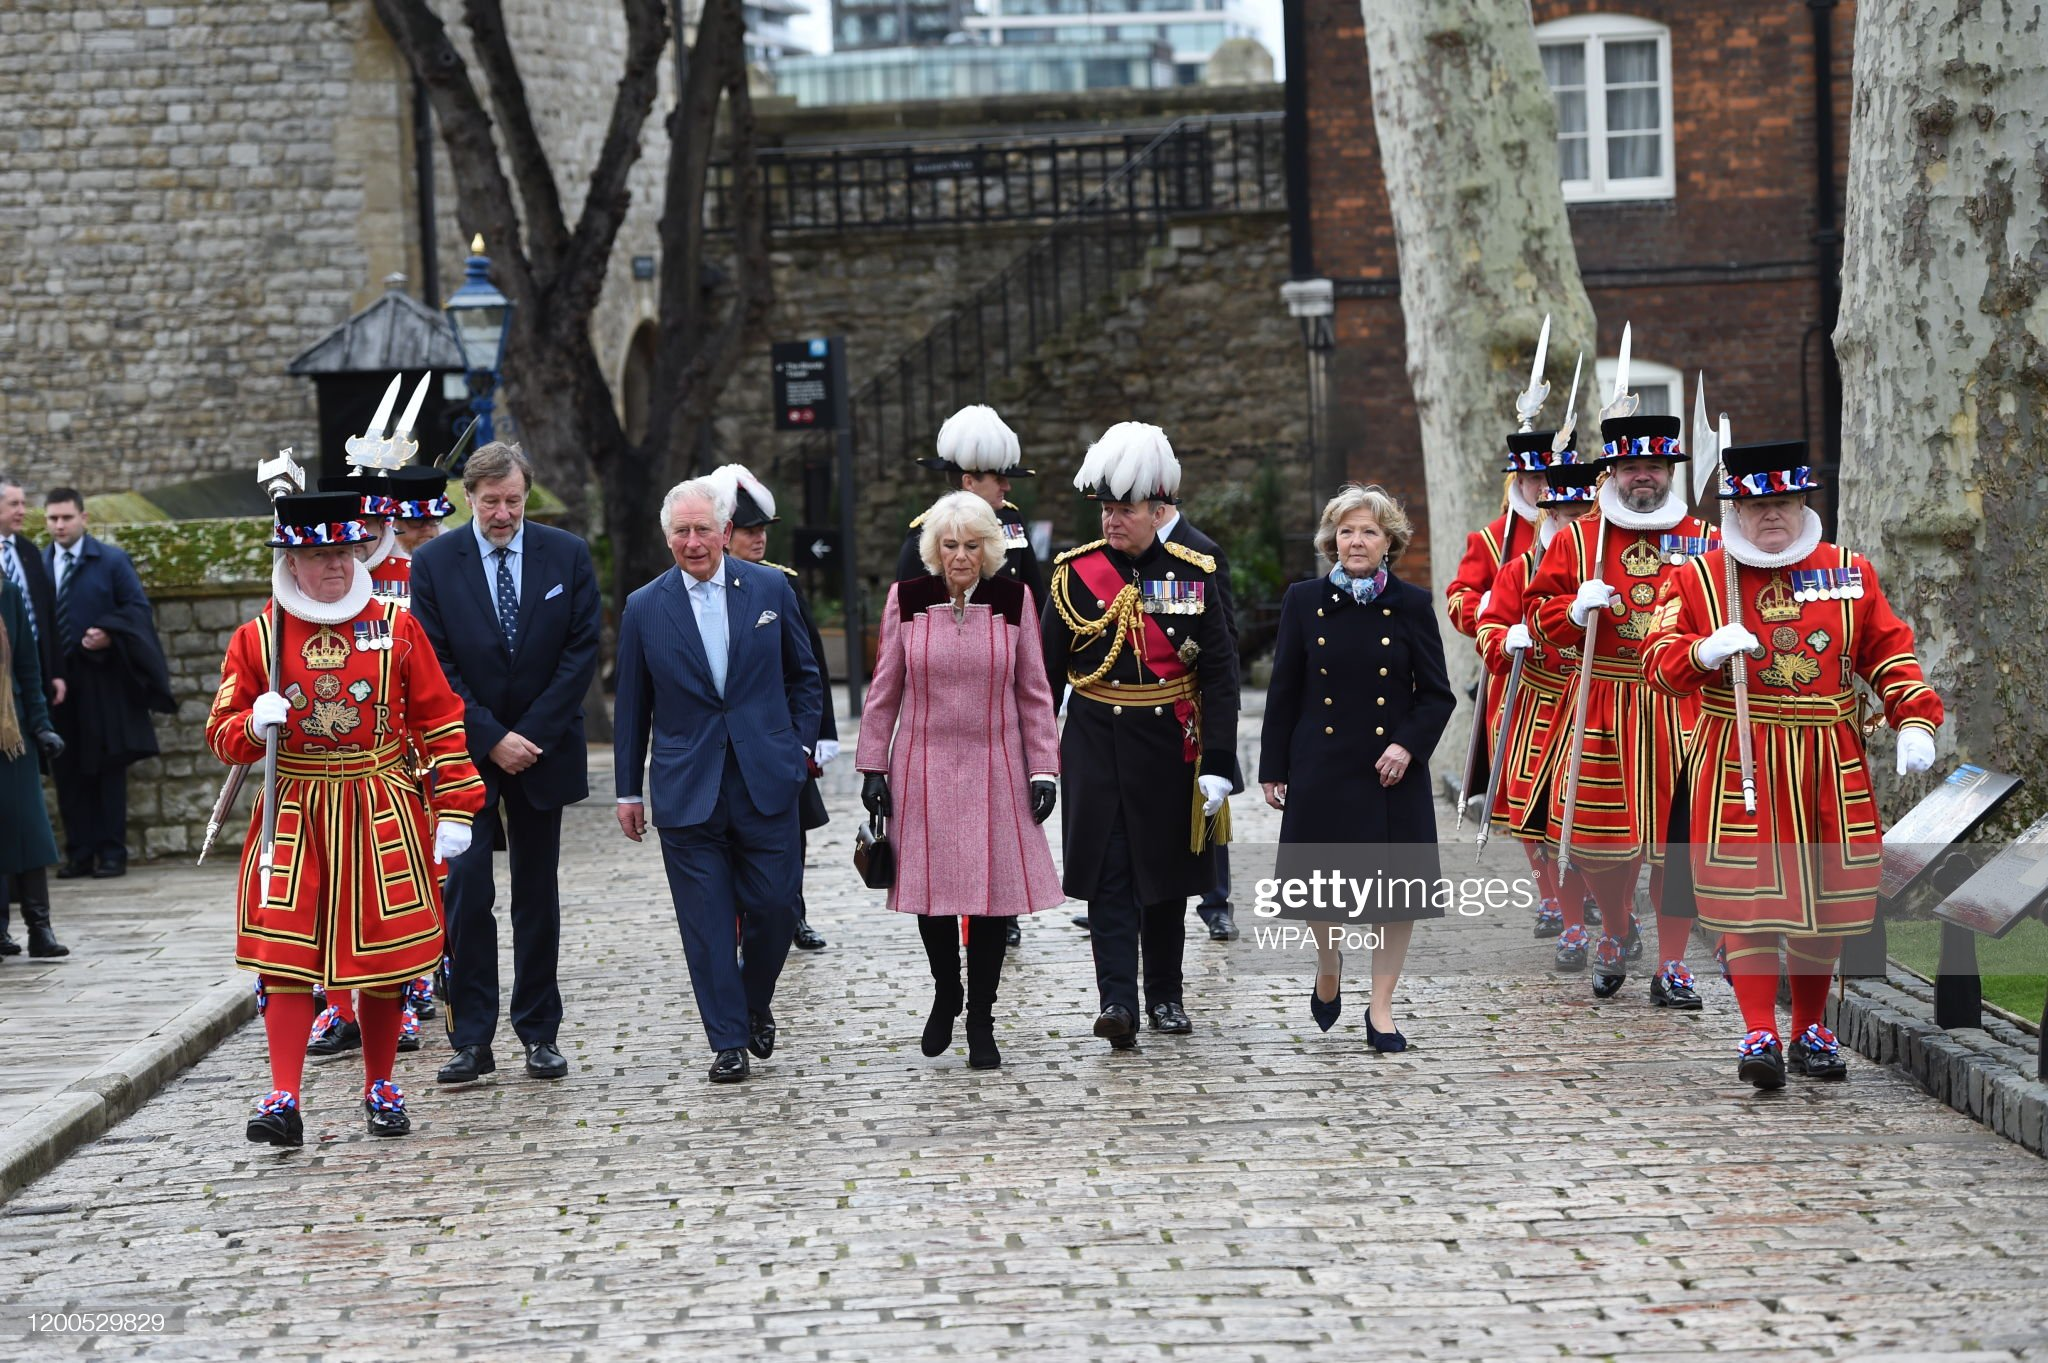 prince-charles-prince-of-wales-and-camilla-duchess-of-cornwall-visit-picture-id1200529829